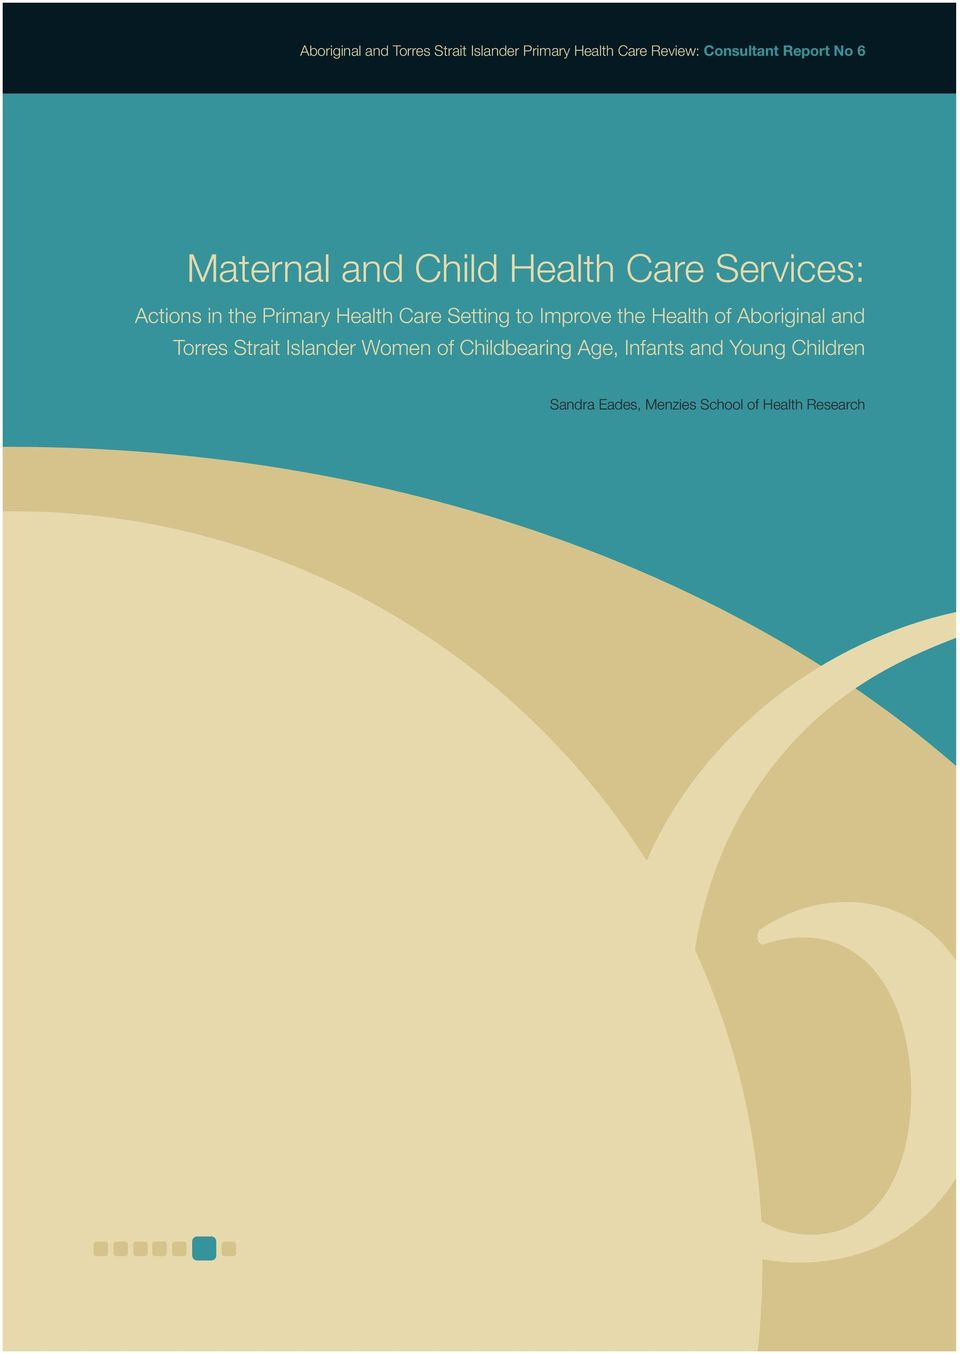 Setting to Improve the Health of Aboriginal and Torres Strait Islander Women of